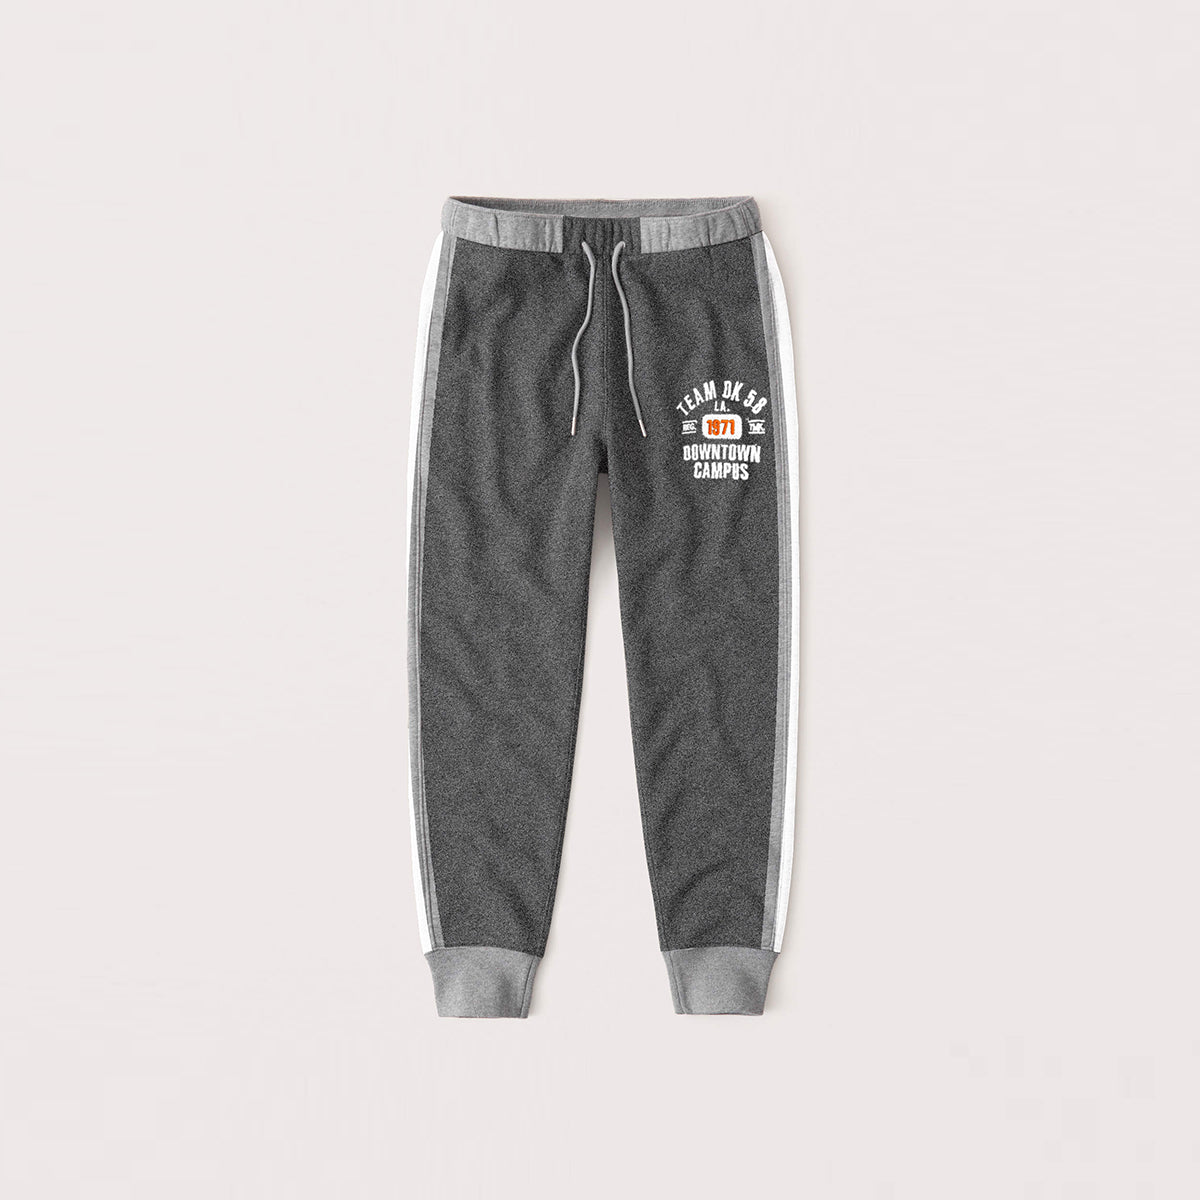 Red Pearl Slim Fit Fleece Jogger Trouser For Kids-Dark Grey Melange With Grey & White Stripe-NA12591